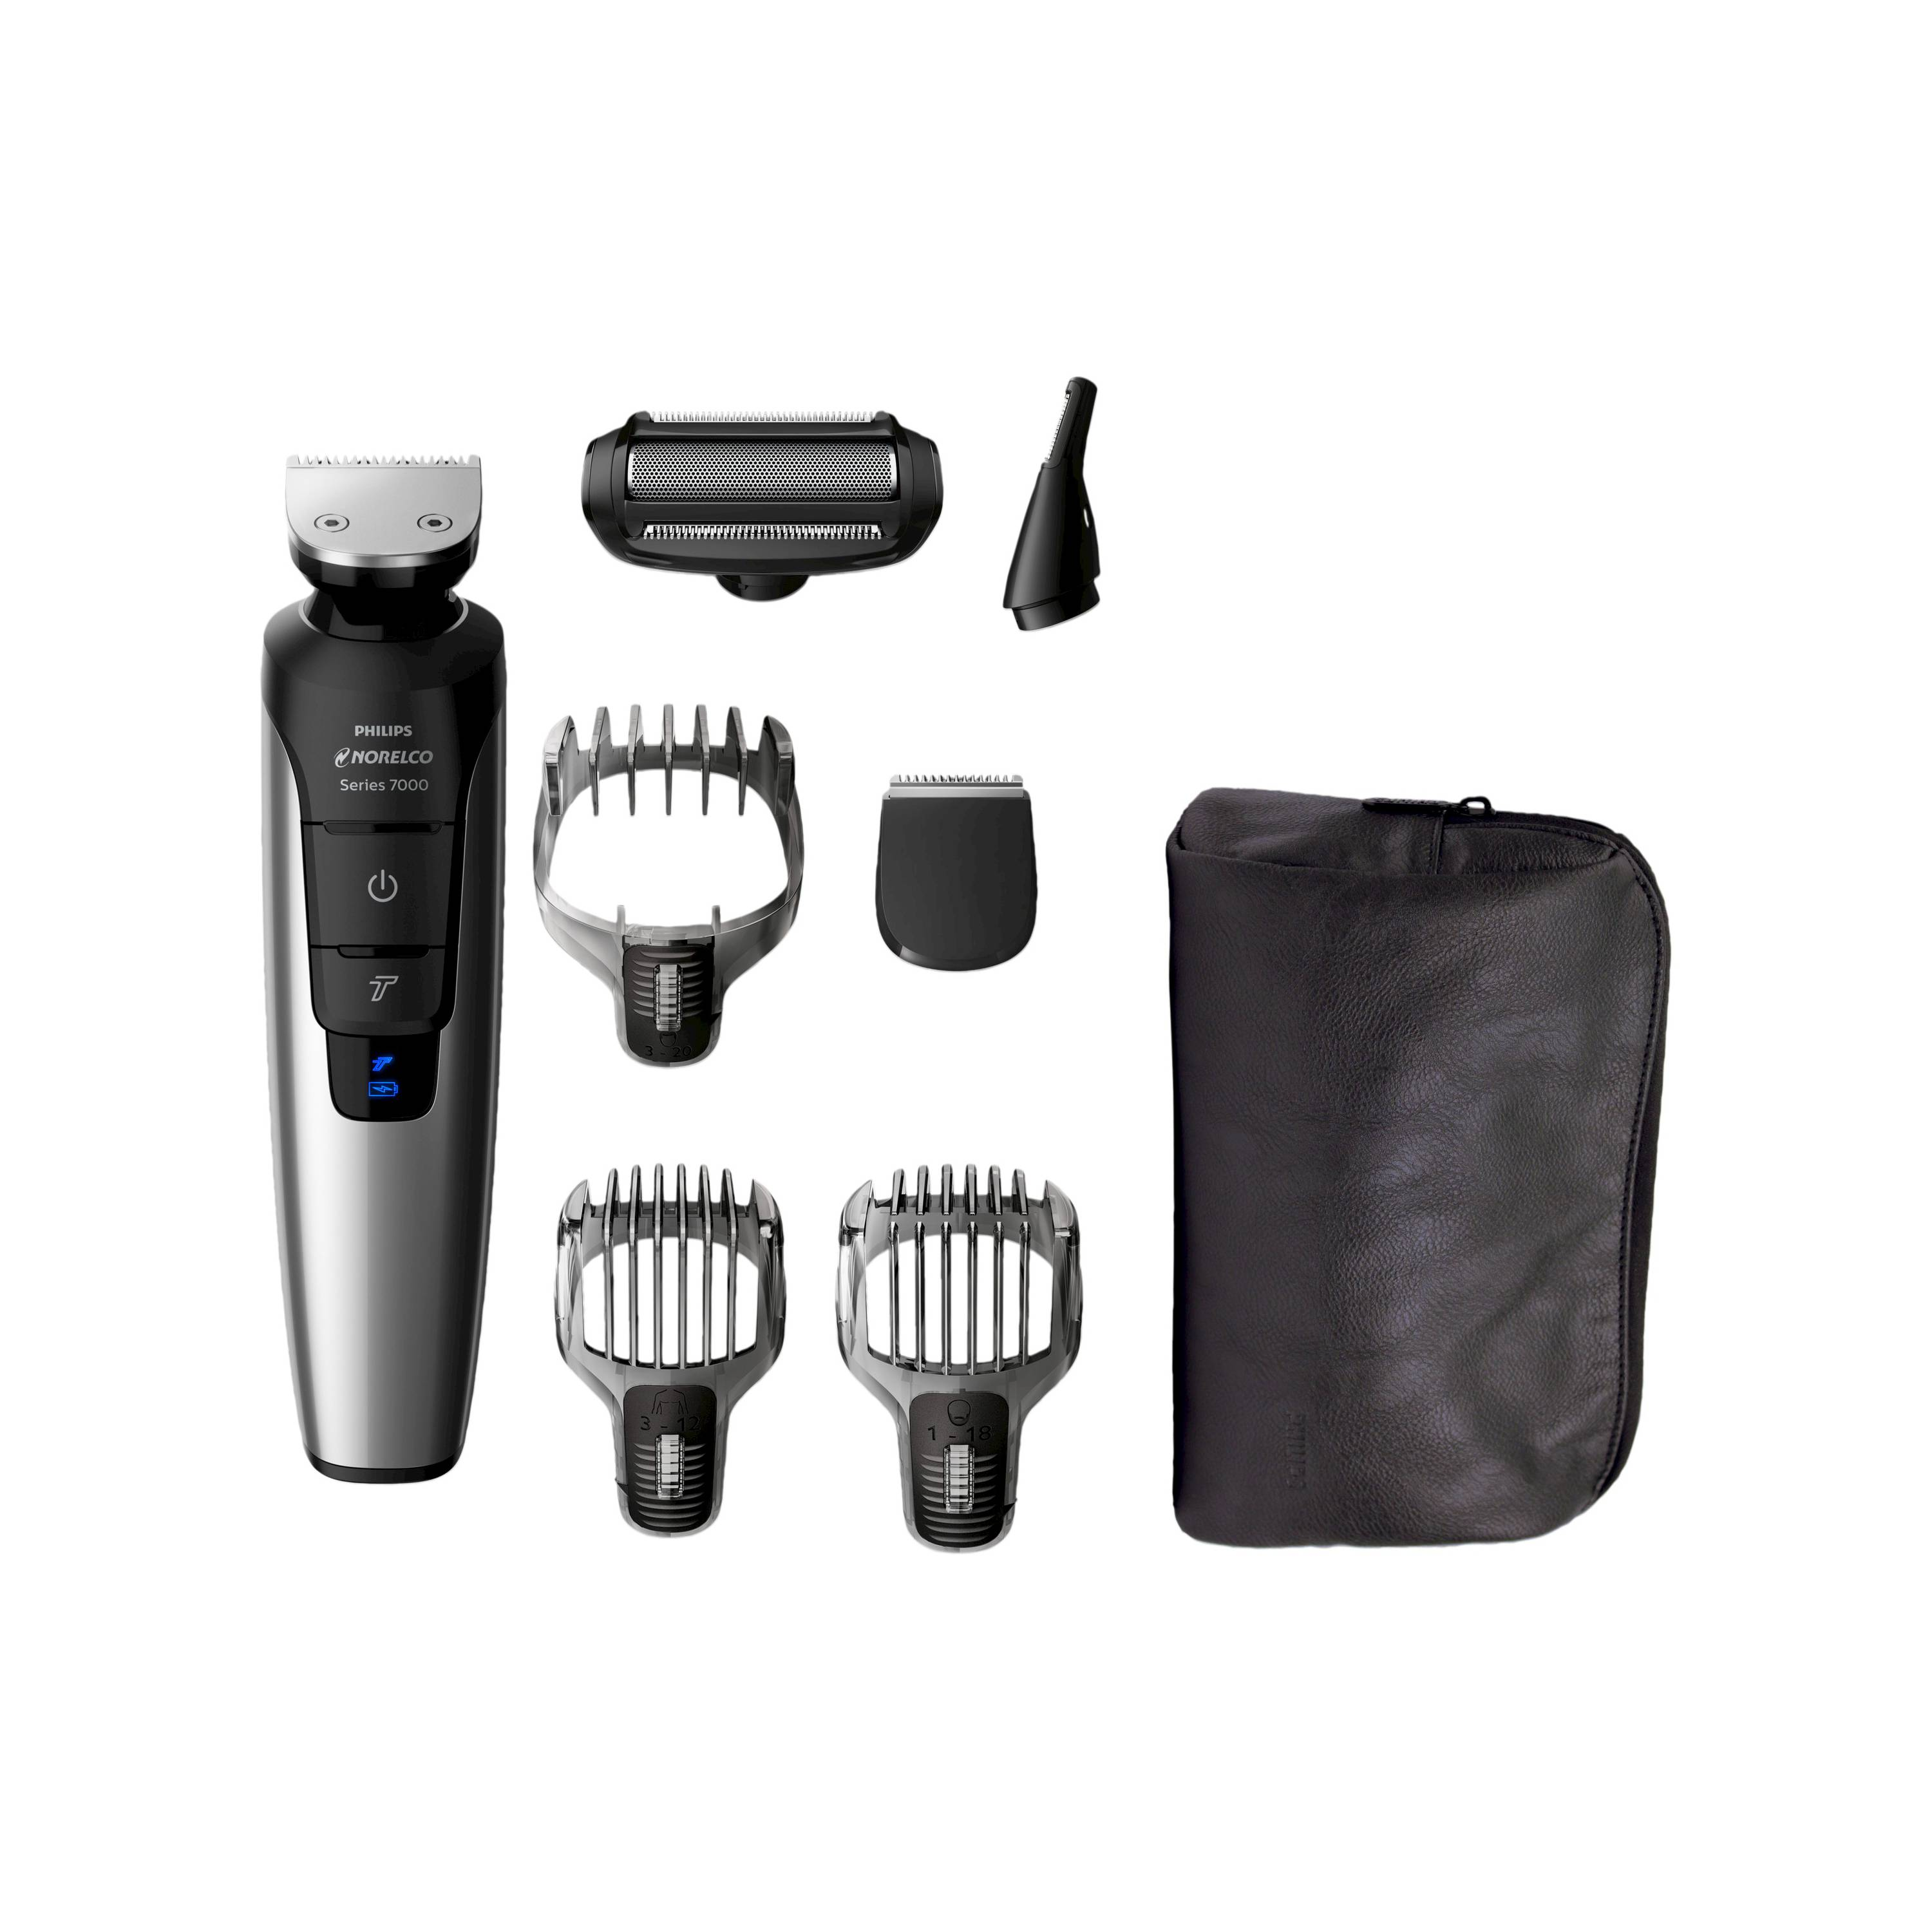 Philips Norelco Multigroomer 7500, QG3398/49 $30